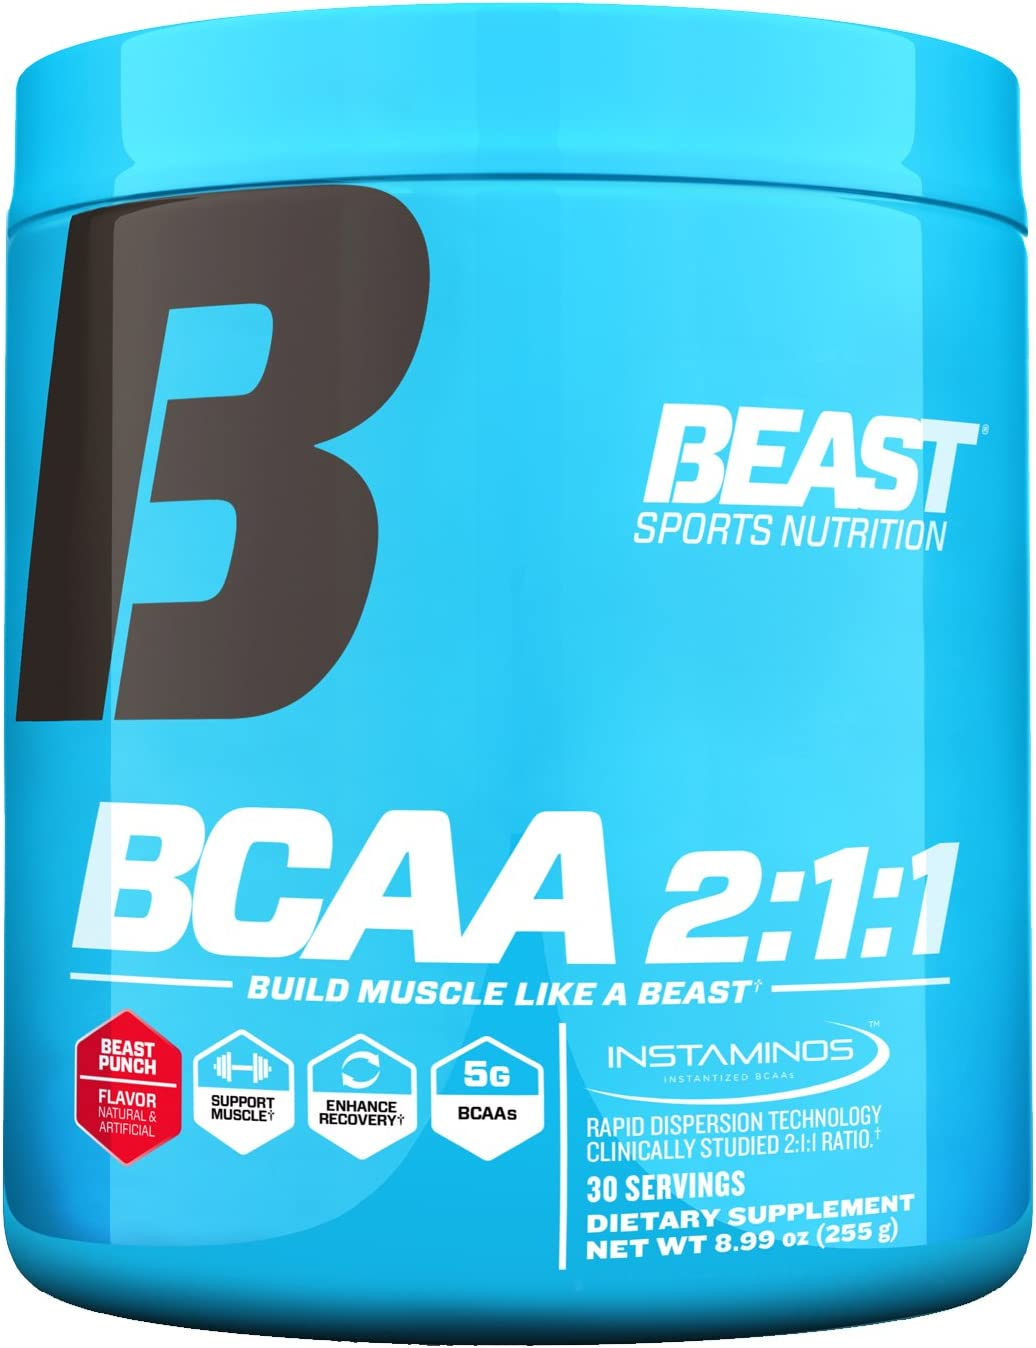 Beast Sports Nutrition BCAA 2 1 1 Amino Acid Supplement Support Muscle Growth Minimize Muscle Breakdown Accelerate Recovery Increase Protein Synthesis Beast Punch 30 Servings